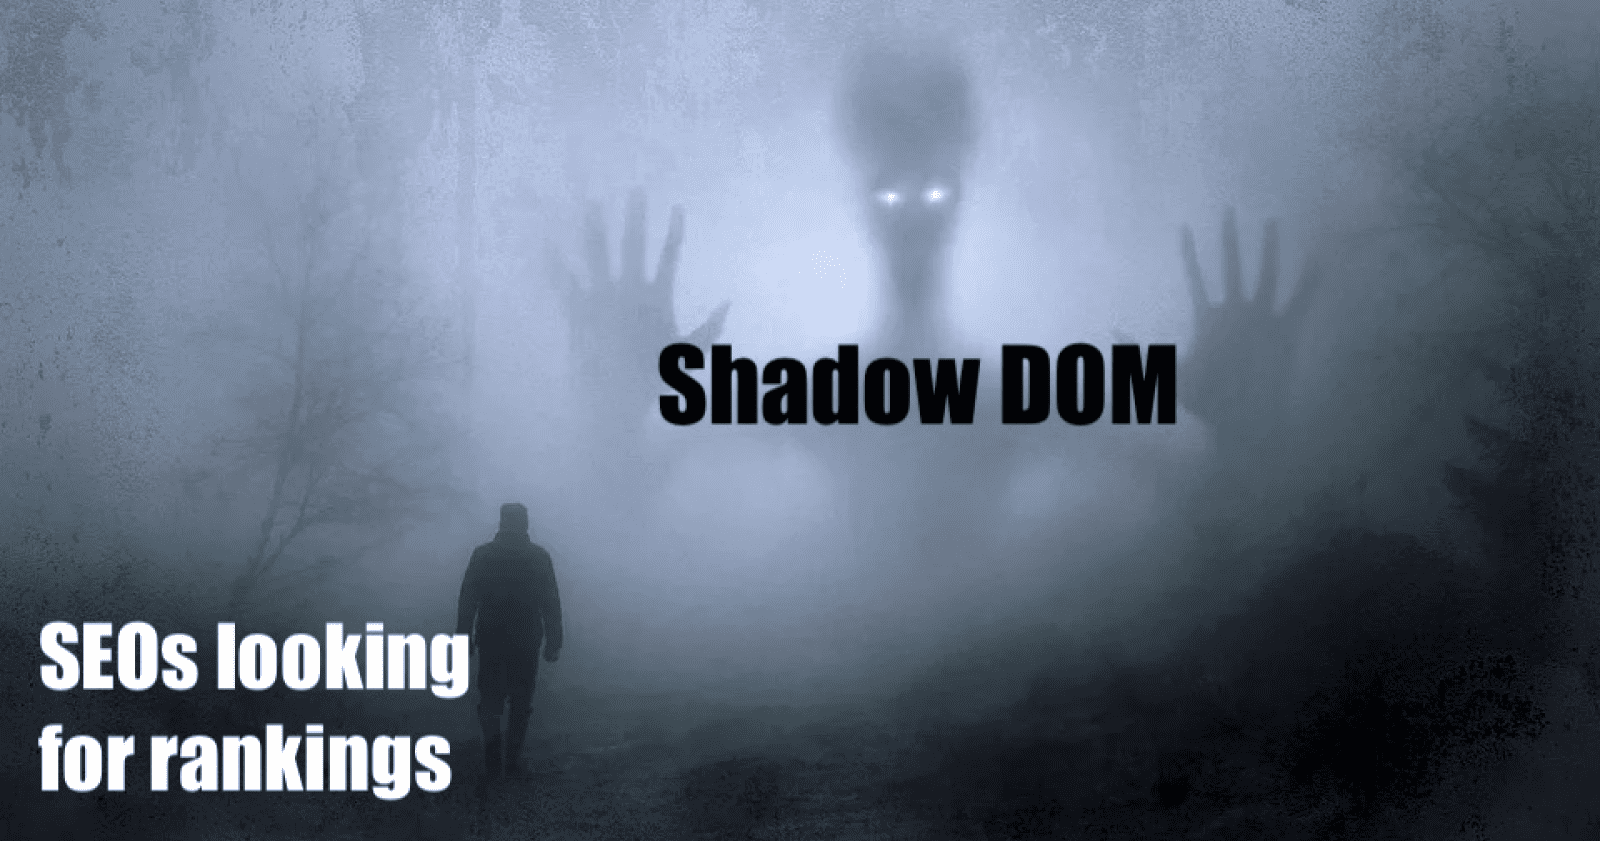 https://www.searchenginejournal.com/shadow-dom/353644/#close